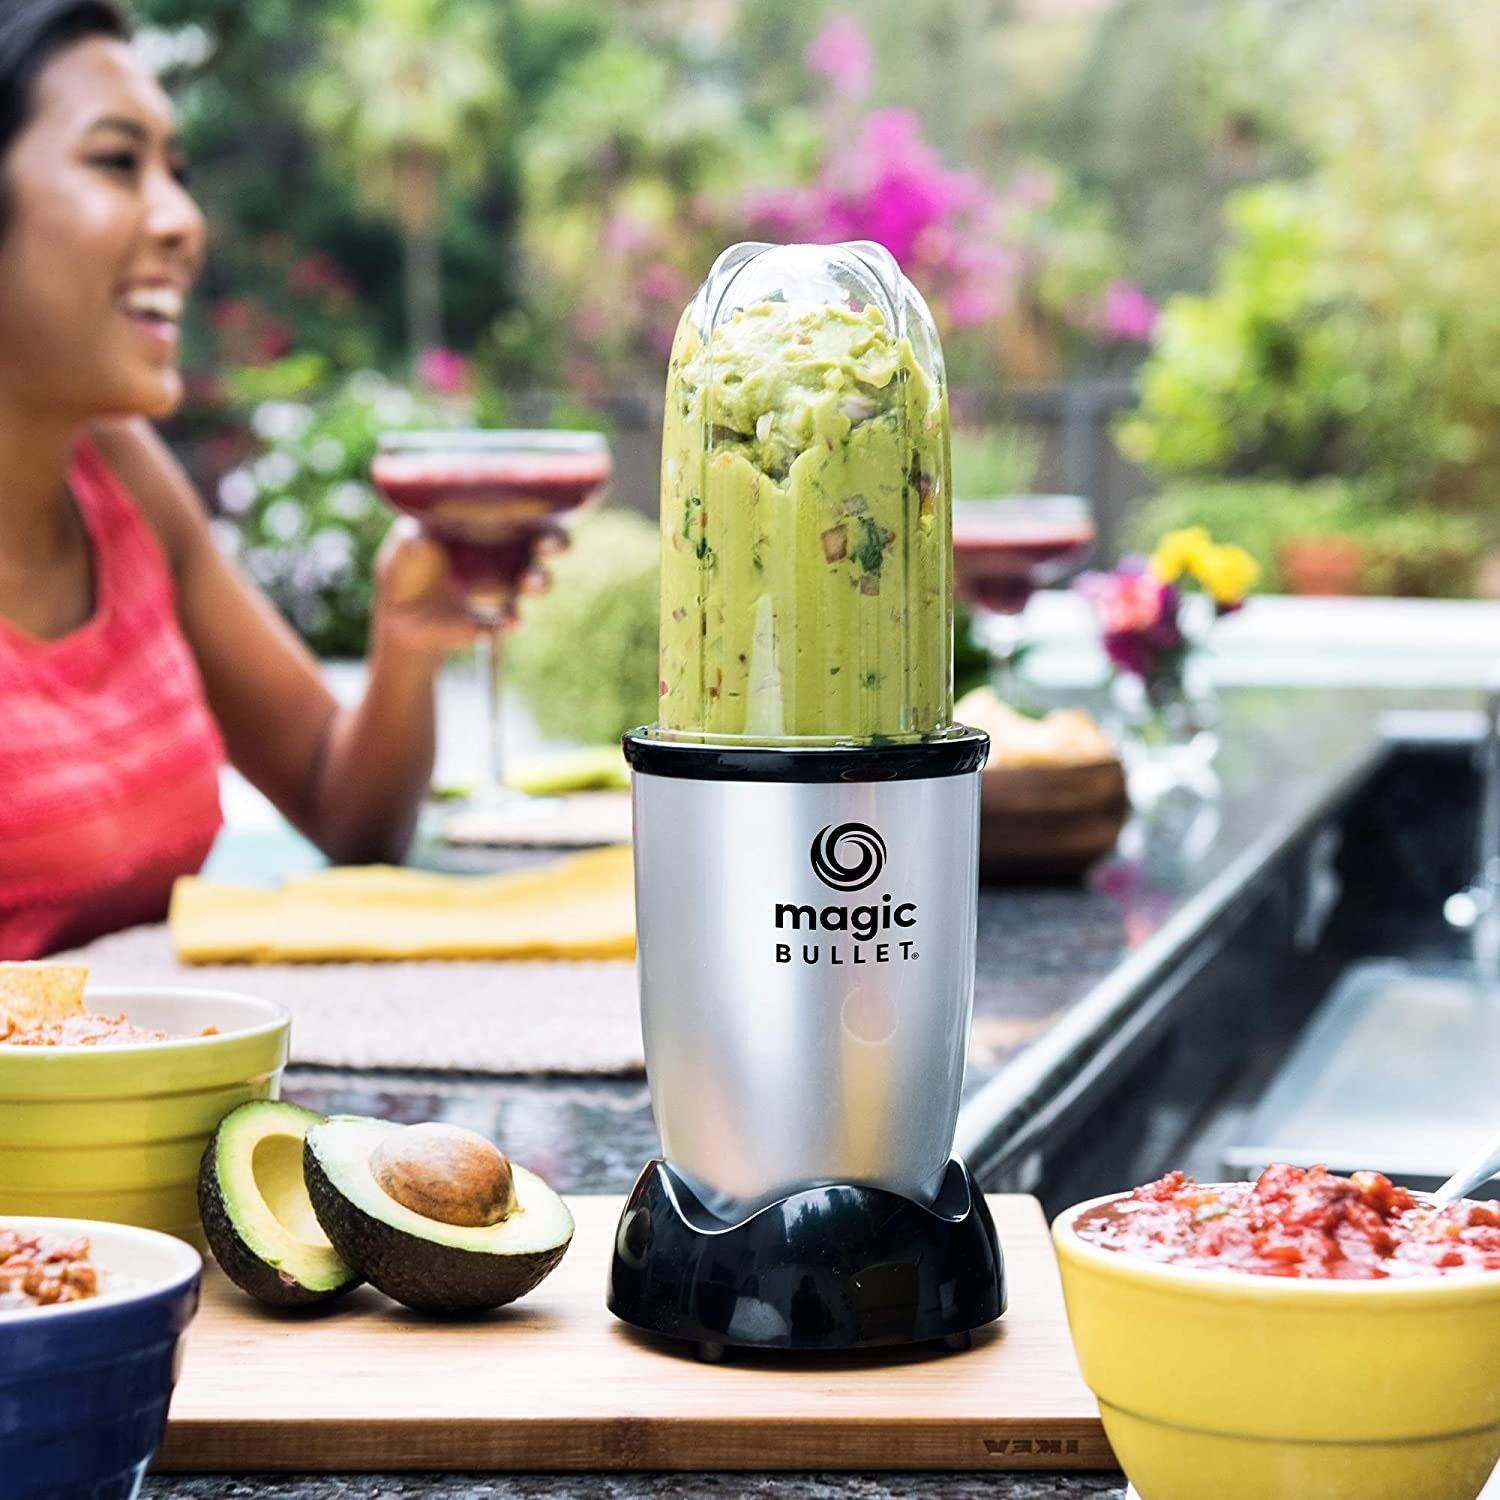 the Magic Bullet with guacamole and a person dining in the background